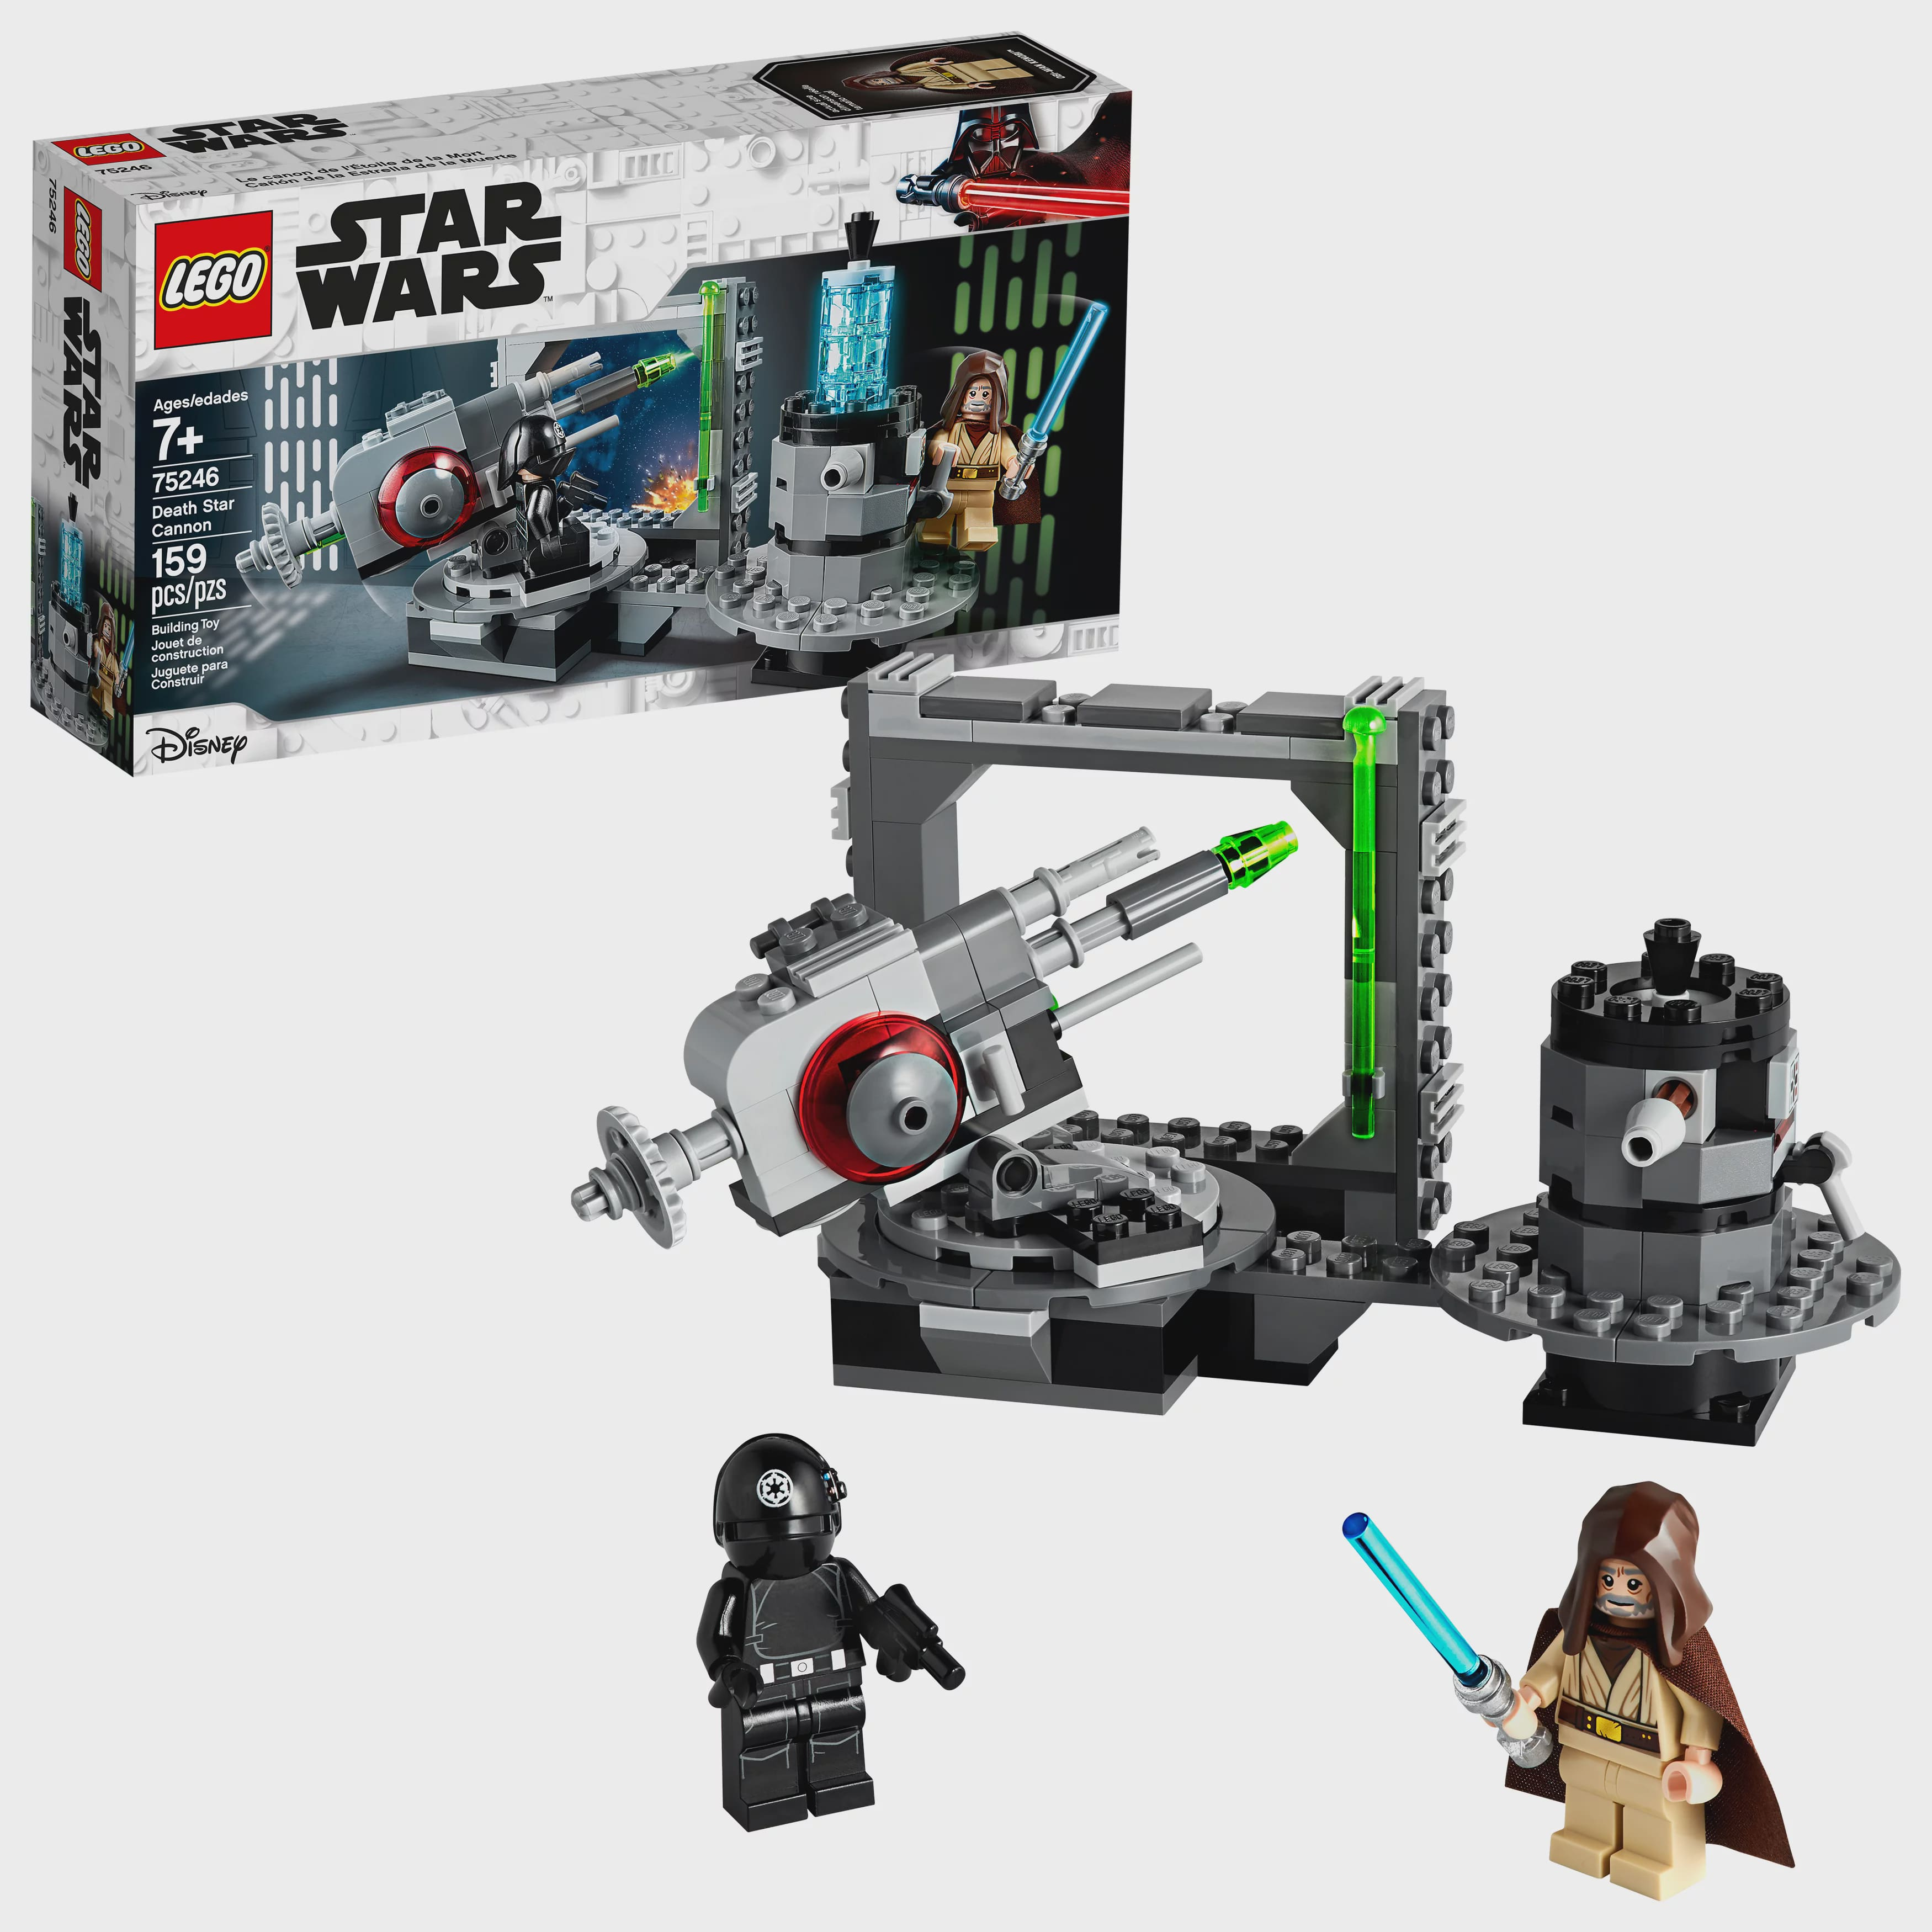 LEGO Star Wars: A New Hope Death Star Cannon 75246 Building Kit